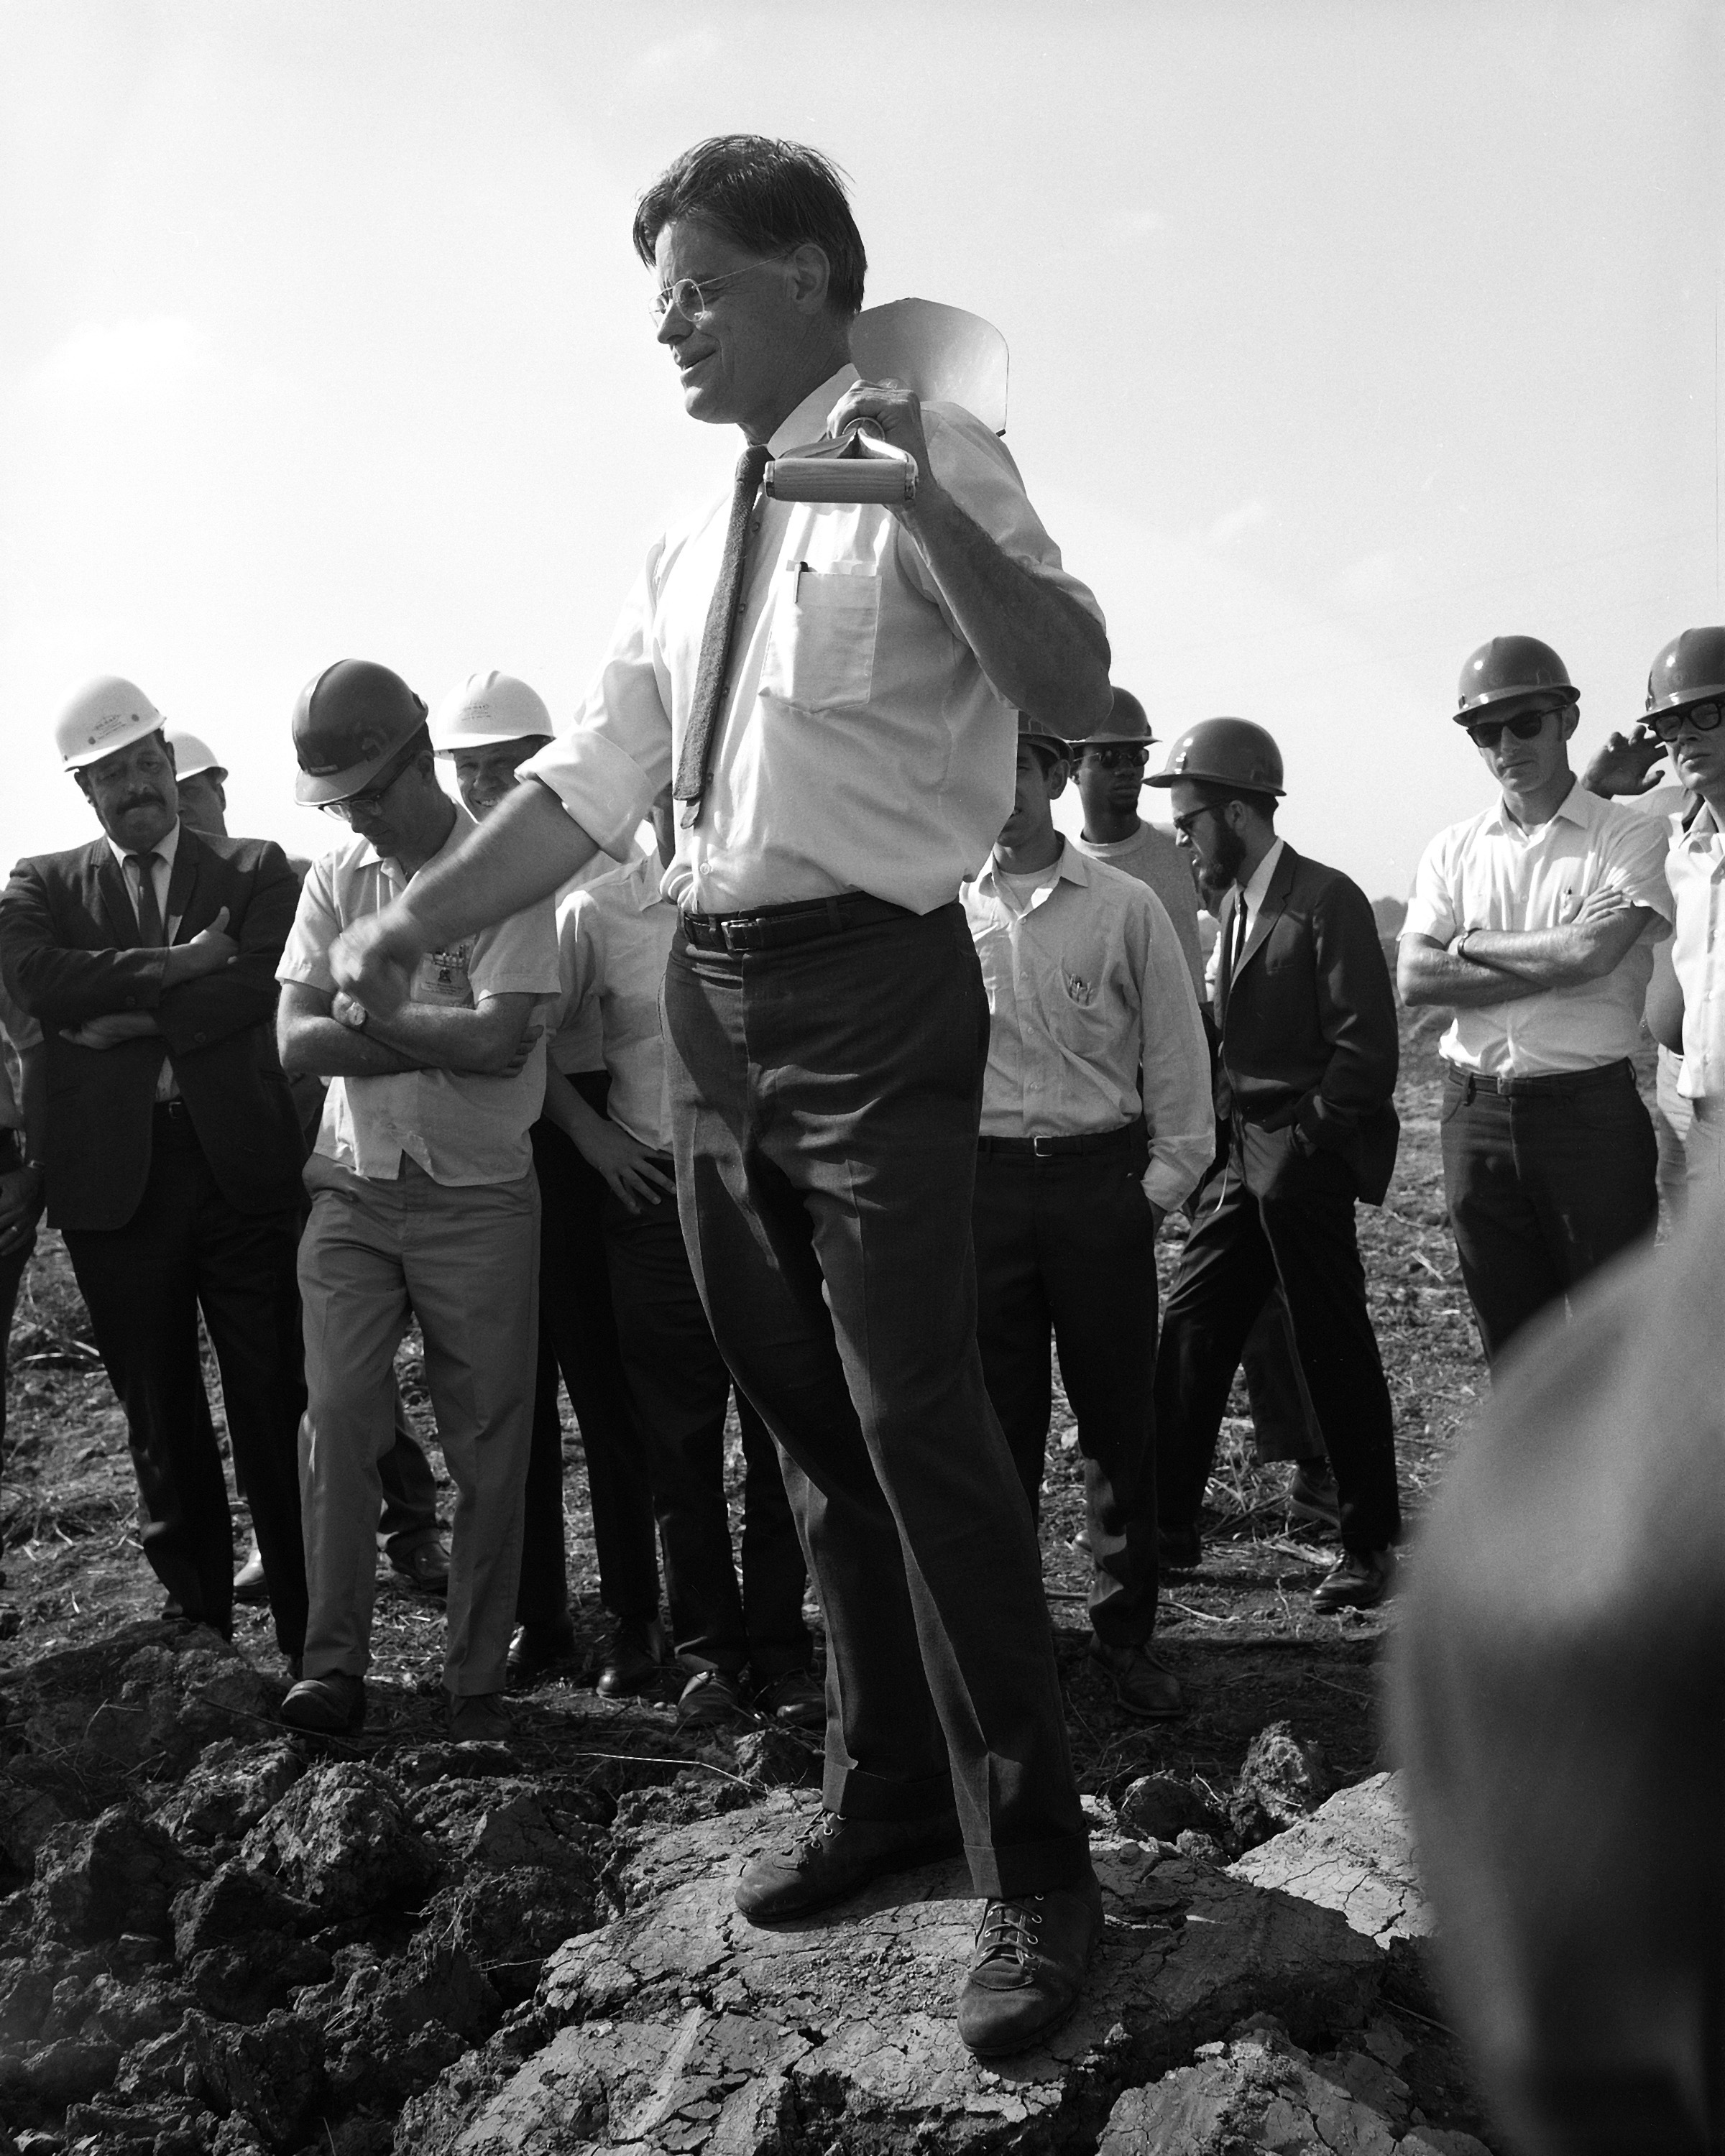 Today marks the 100th anniversary of the birth of Fermilab's first director, Robert Wilson. Here he breaks ground for the Main Ring. Photo: Fermilab